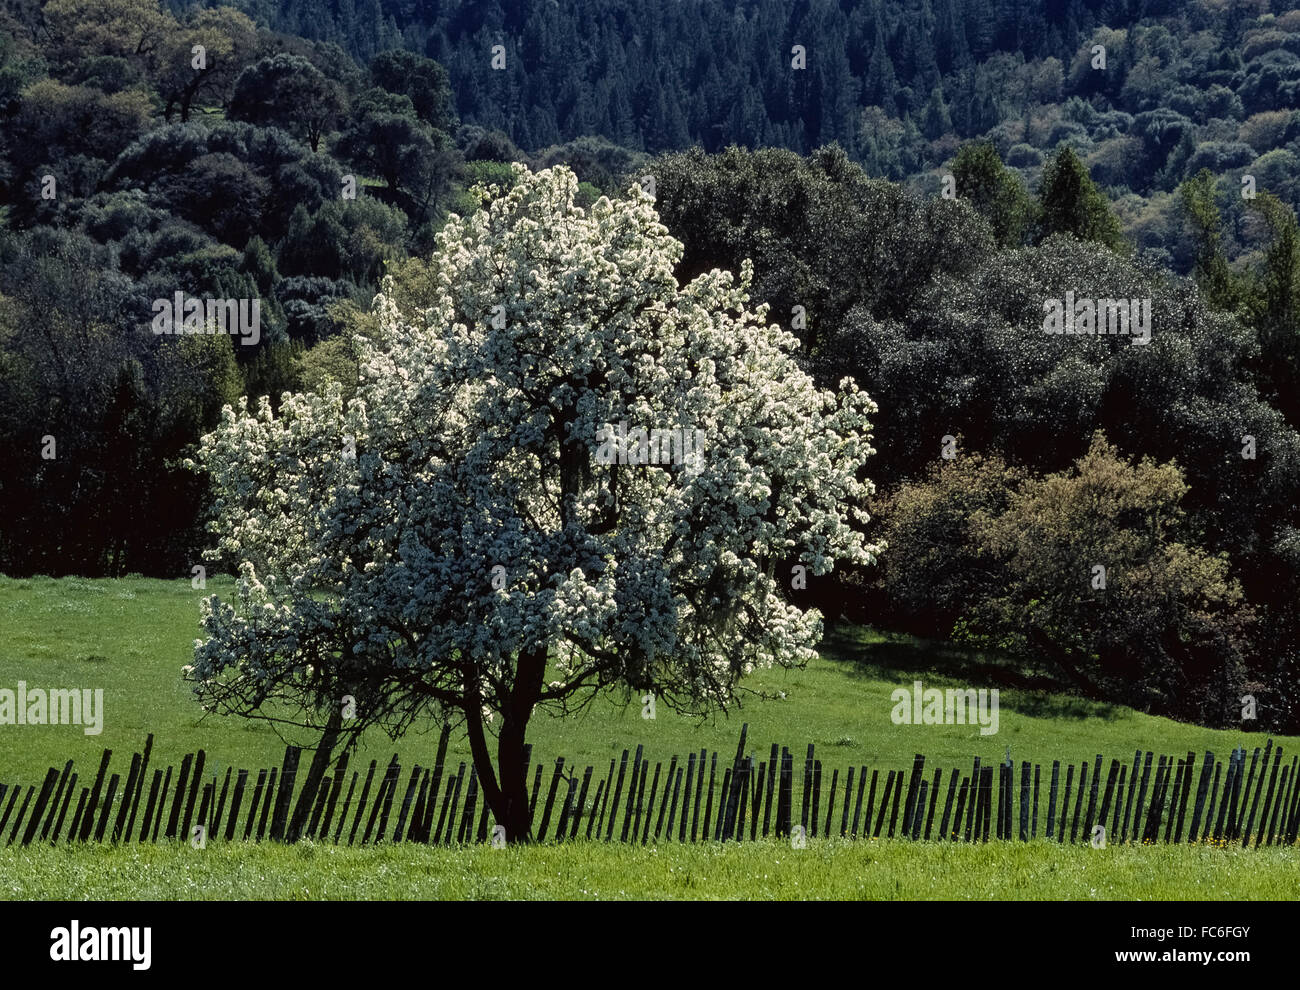 A single apple tree (Malus domestica) with its beautiful white blossoms in springtime stands out in the rural countryside - Stock Image